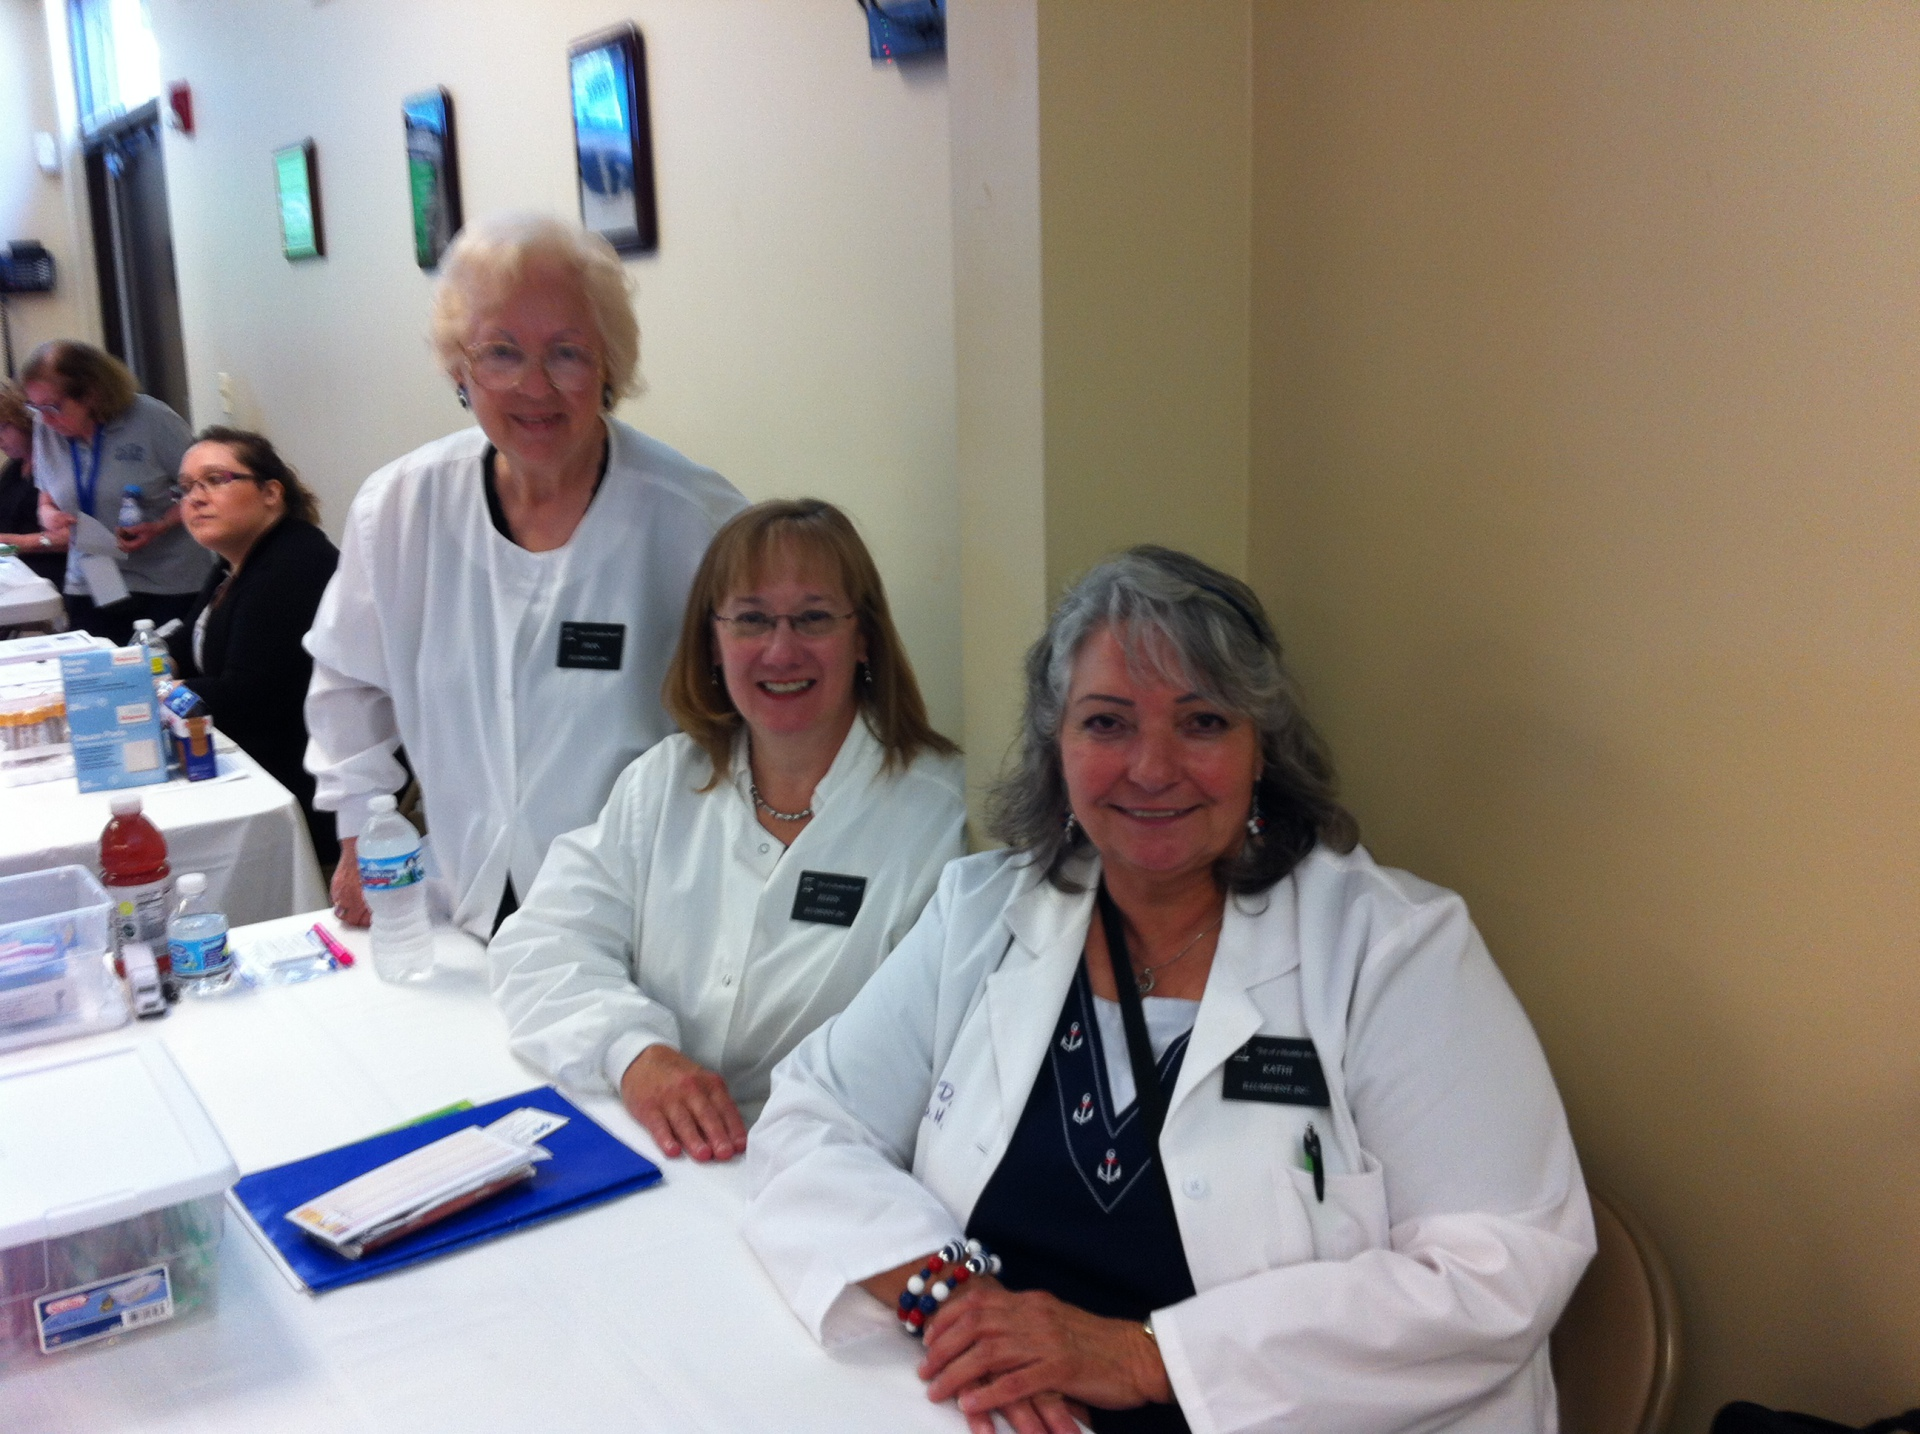 Fran and Kathy at one of our presentations in Niles!